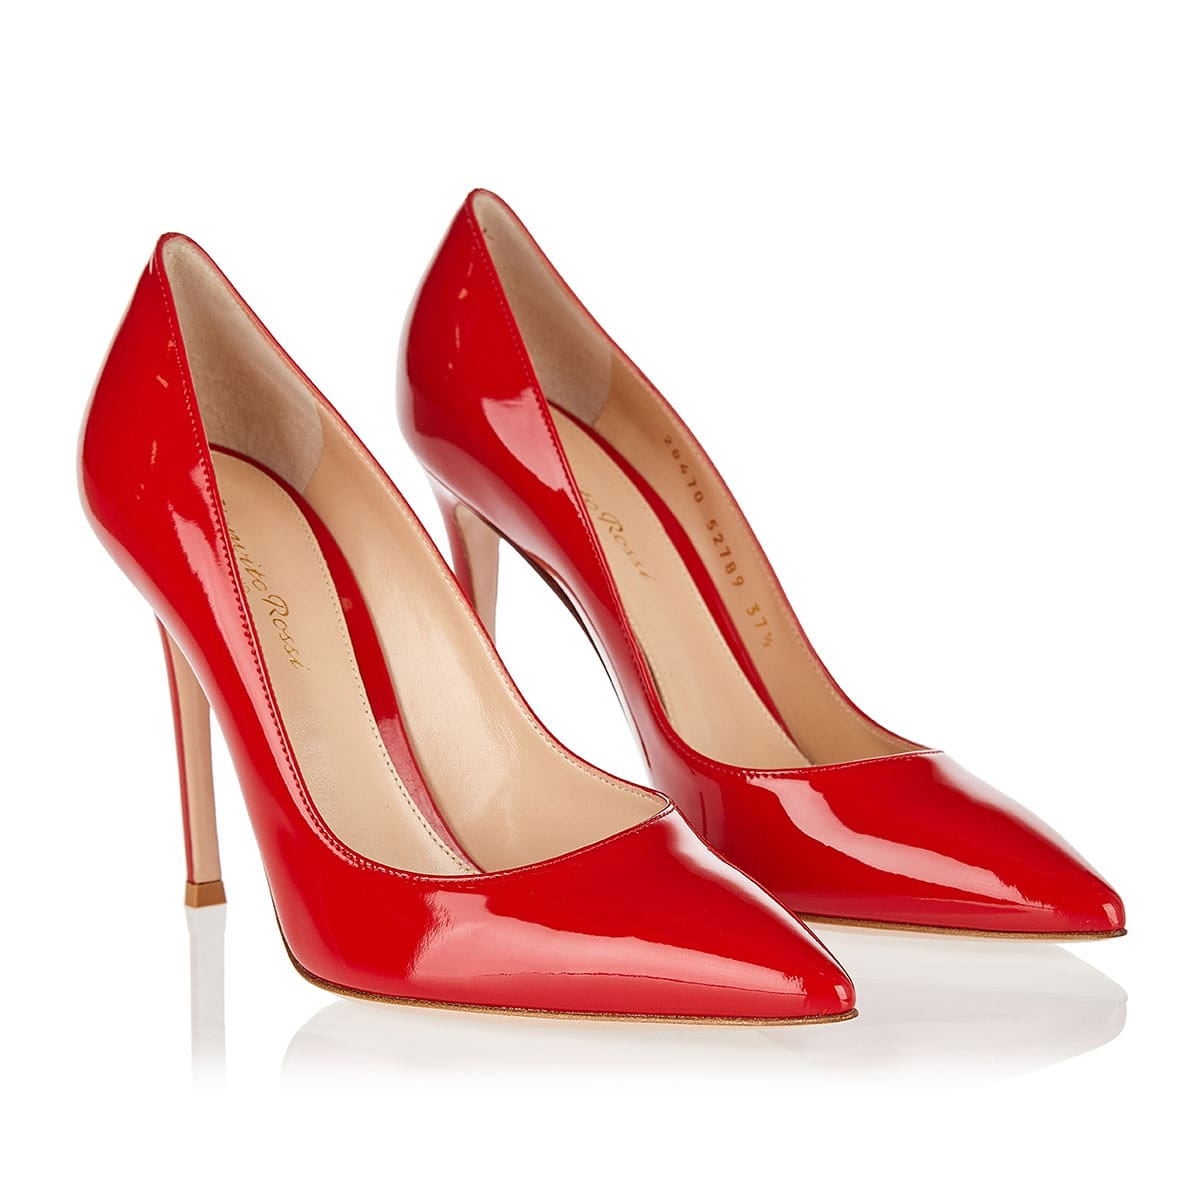 Gianvito 105 patent leather pumps